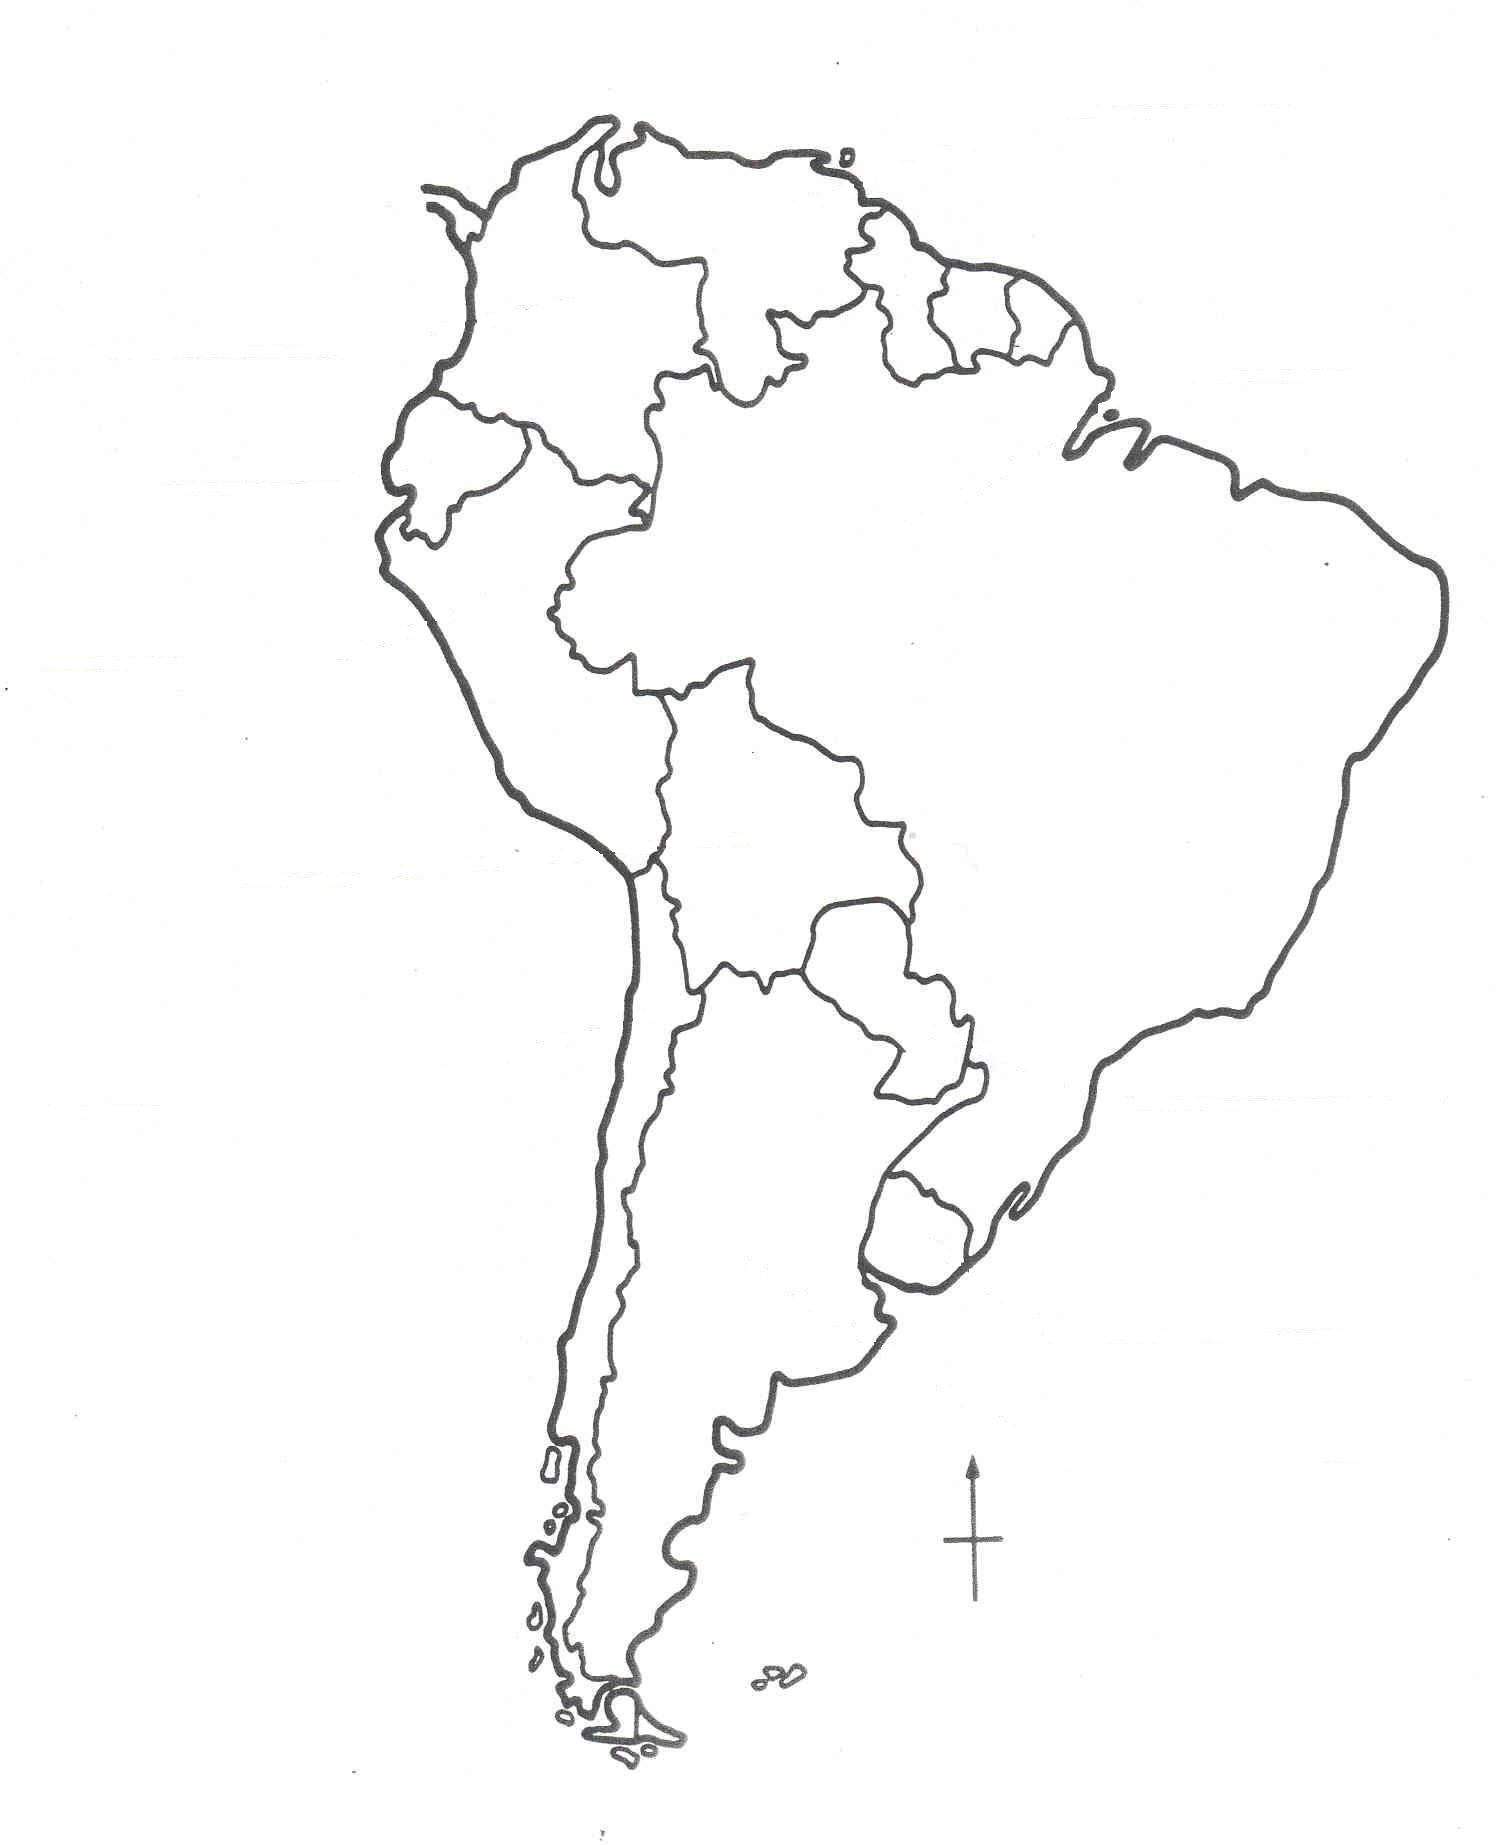 Coloring Map Of South America #5 - South America Map Coloring ...